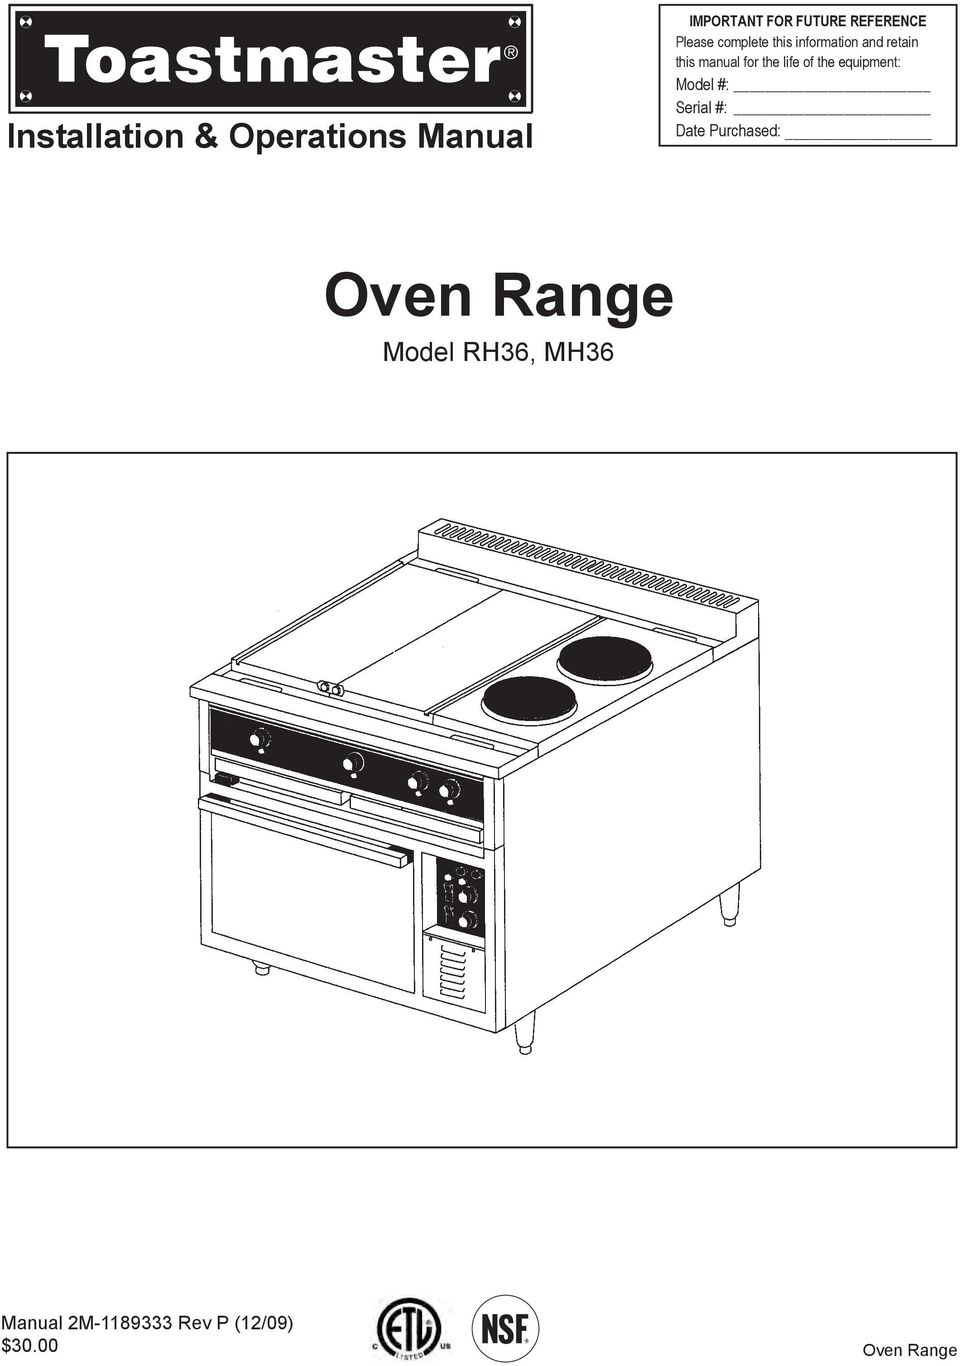 oven range installation \u0026 operations manual model rh36, mh36 Electrical Wiring Diagrams For Dummies equipment model serial date purchased oven range model rh36,